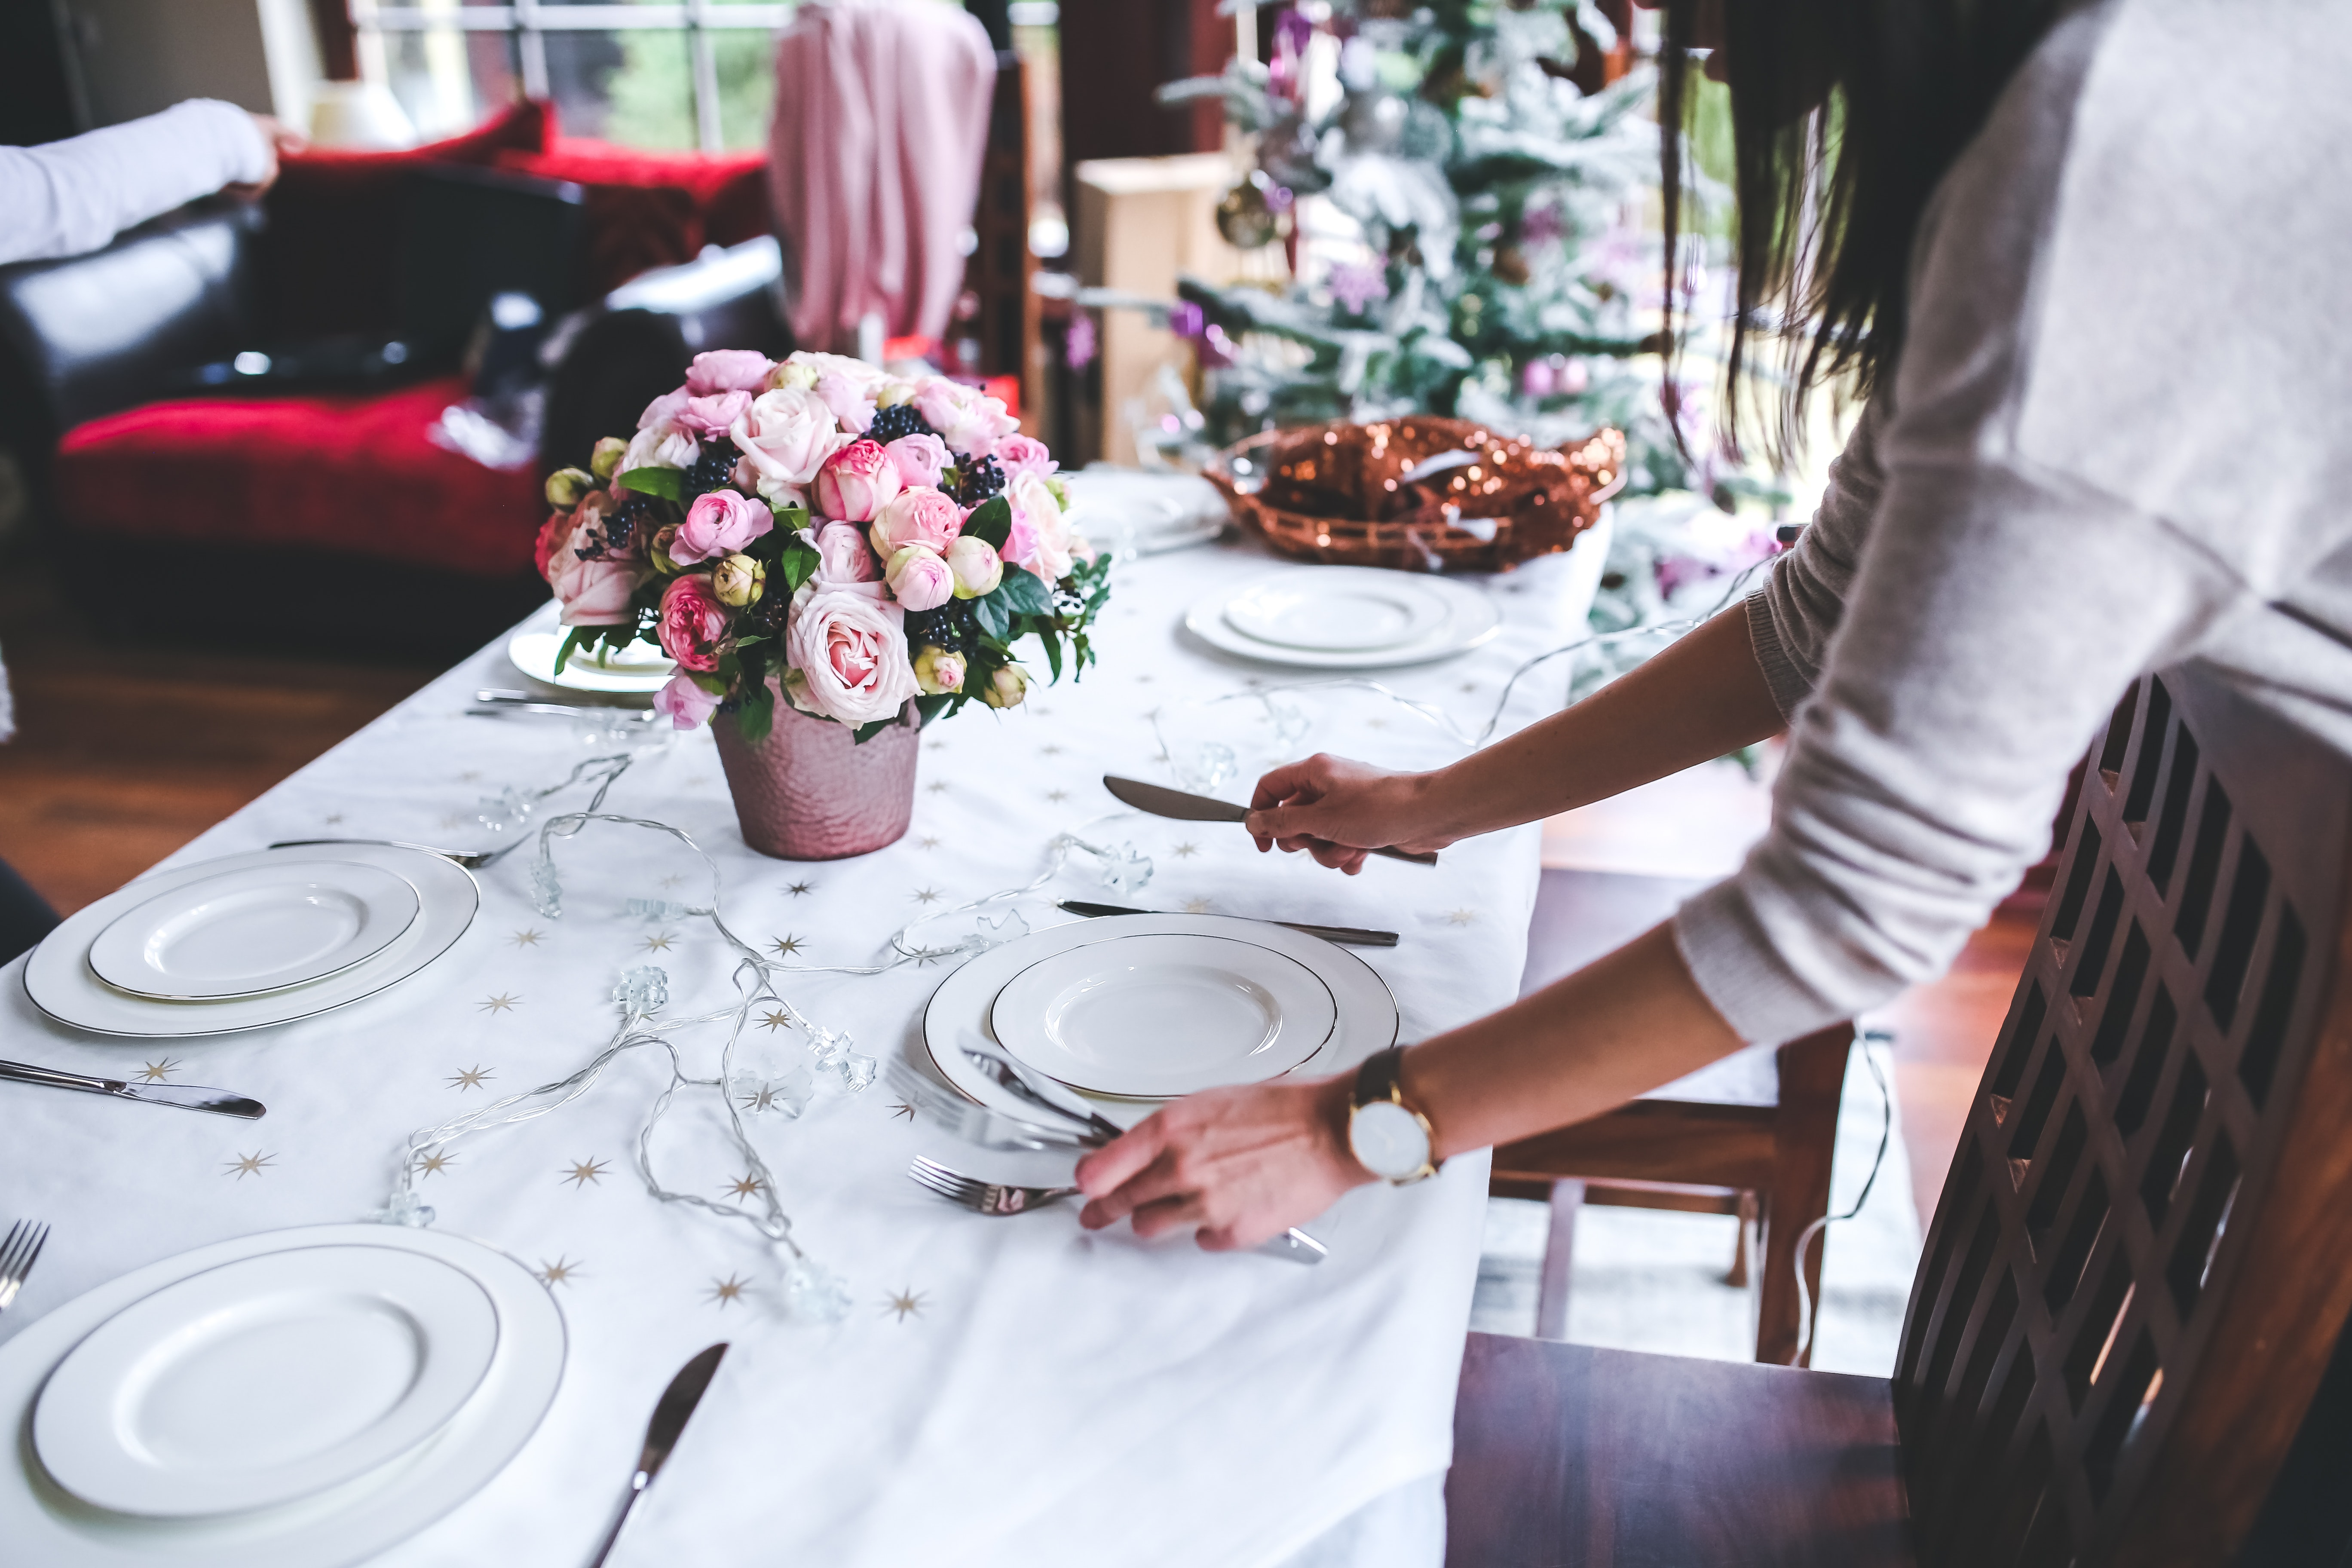 woman setting table for nice dinner